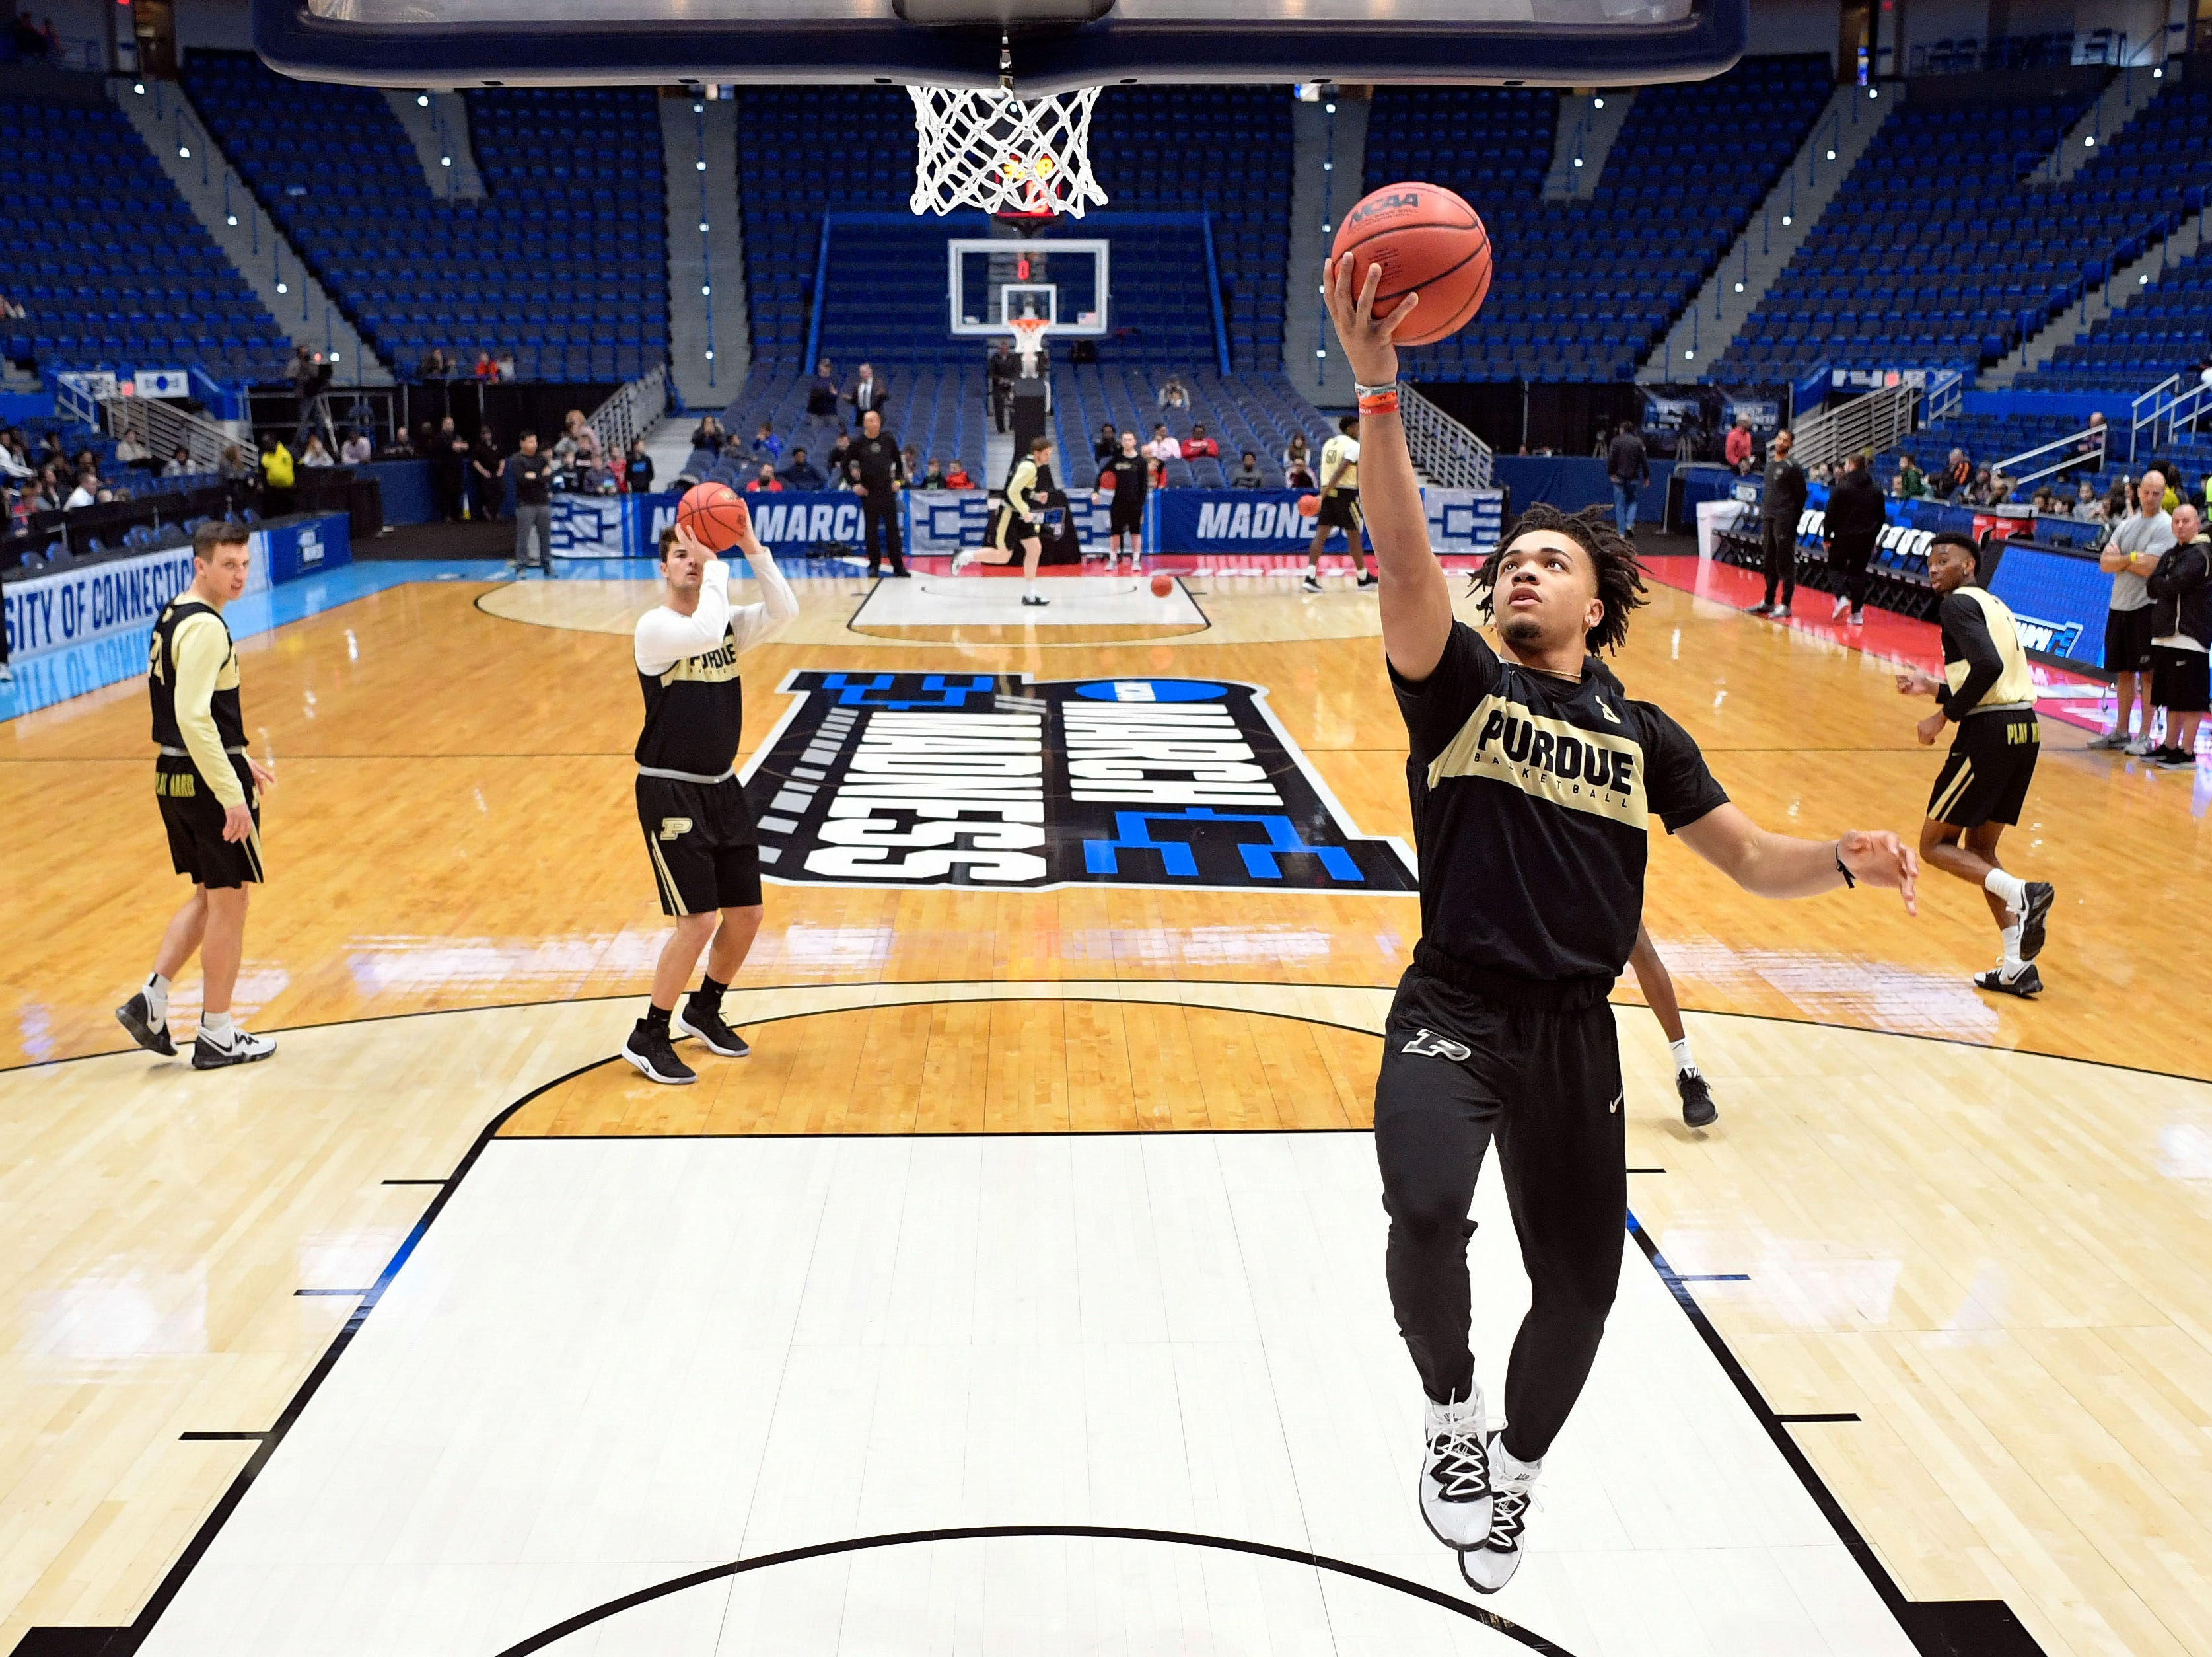 Mar 20, 2019; Hartford, CT, USA; Purdue Boilermakers guard Carsen Edwards (3) attempts a layup during practice before the first round of the 2019 NCAA Tournament at XL Center. Mandatory Credit: David Butler II-USA TODAY Sports